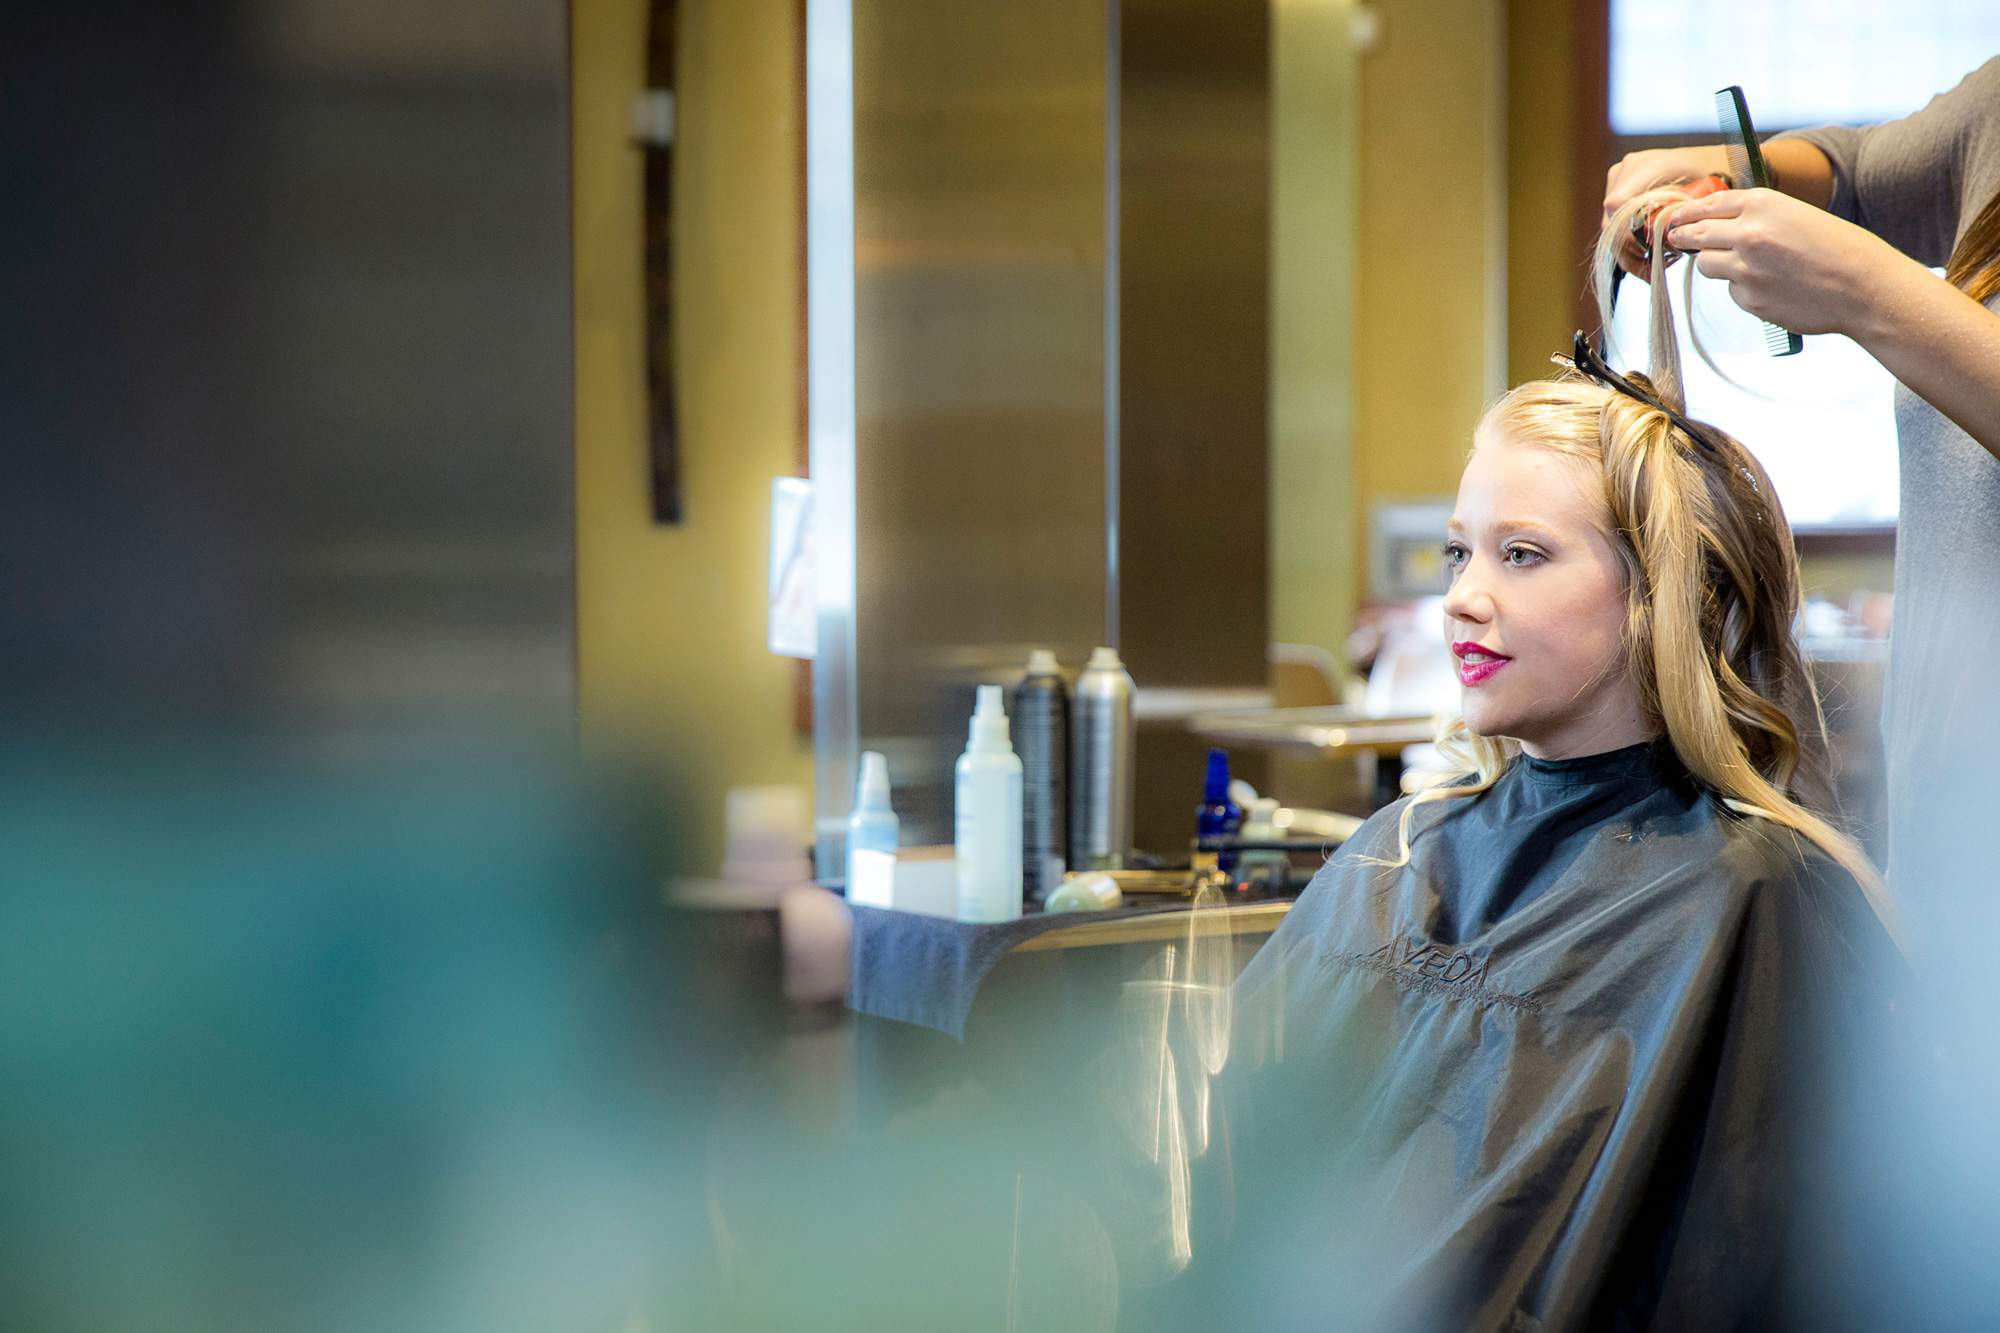 Wedding Hair Services - Salon Services - Rapunzels Salon and Spa - Canmore